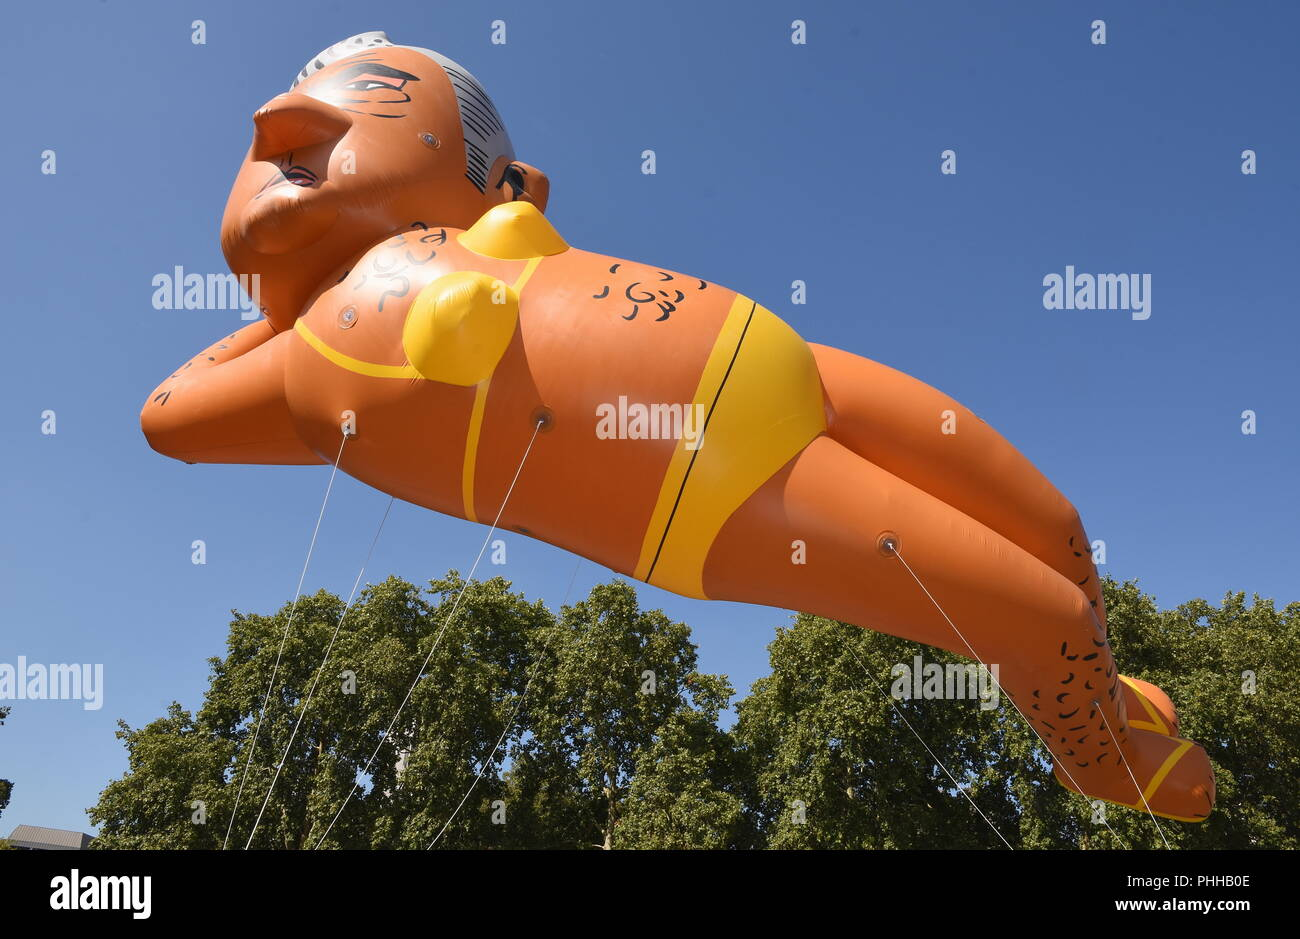 London, UK. 1st September, 2018. Make London Safe Again Campainers flew a 29 ft balloon of Sadiq Khan wearing a bikini to mark the fight back against rising knife and gun crime amid the lack of action from the London Mayor,Parliament Square,London.UK Credit: michael melia/Alamy Live News - Stock Image